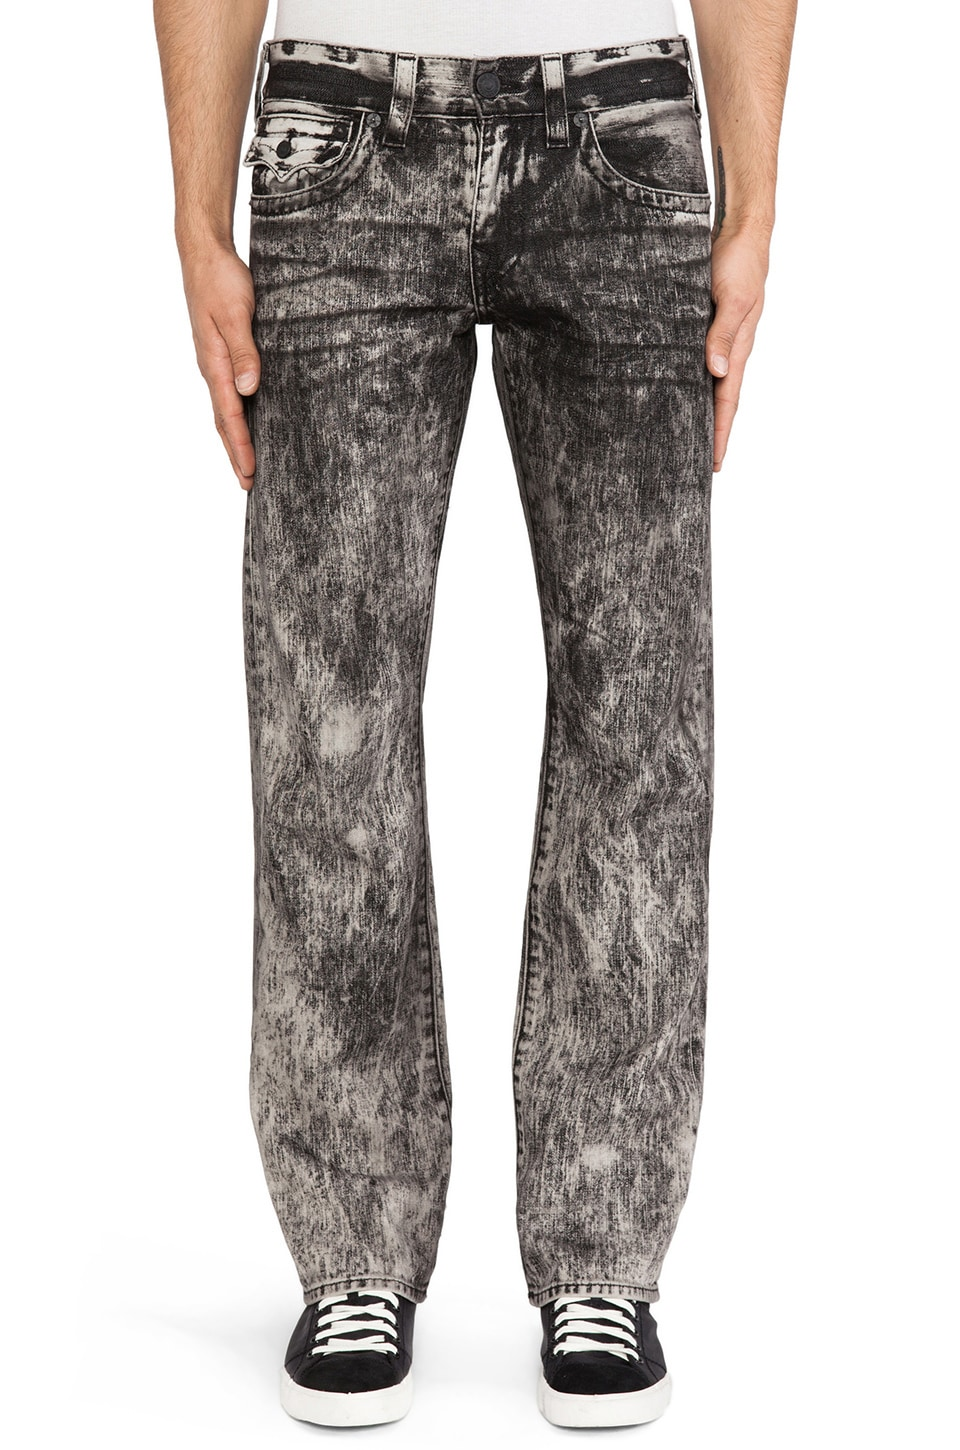 True Religion Ricky in Mineral Marble